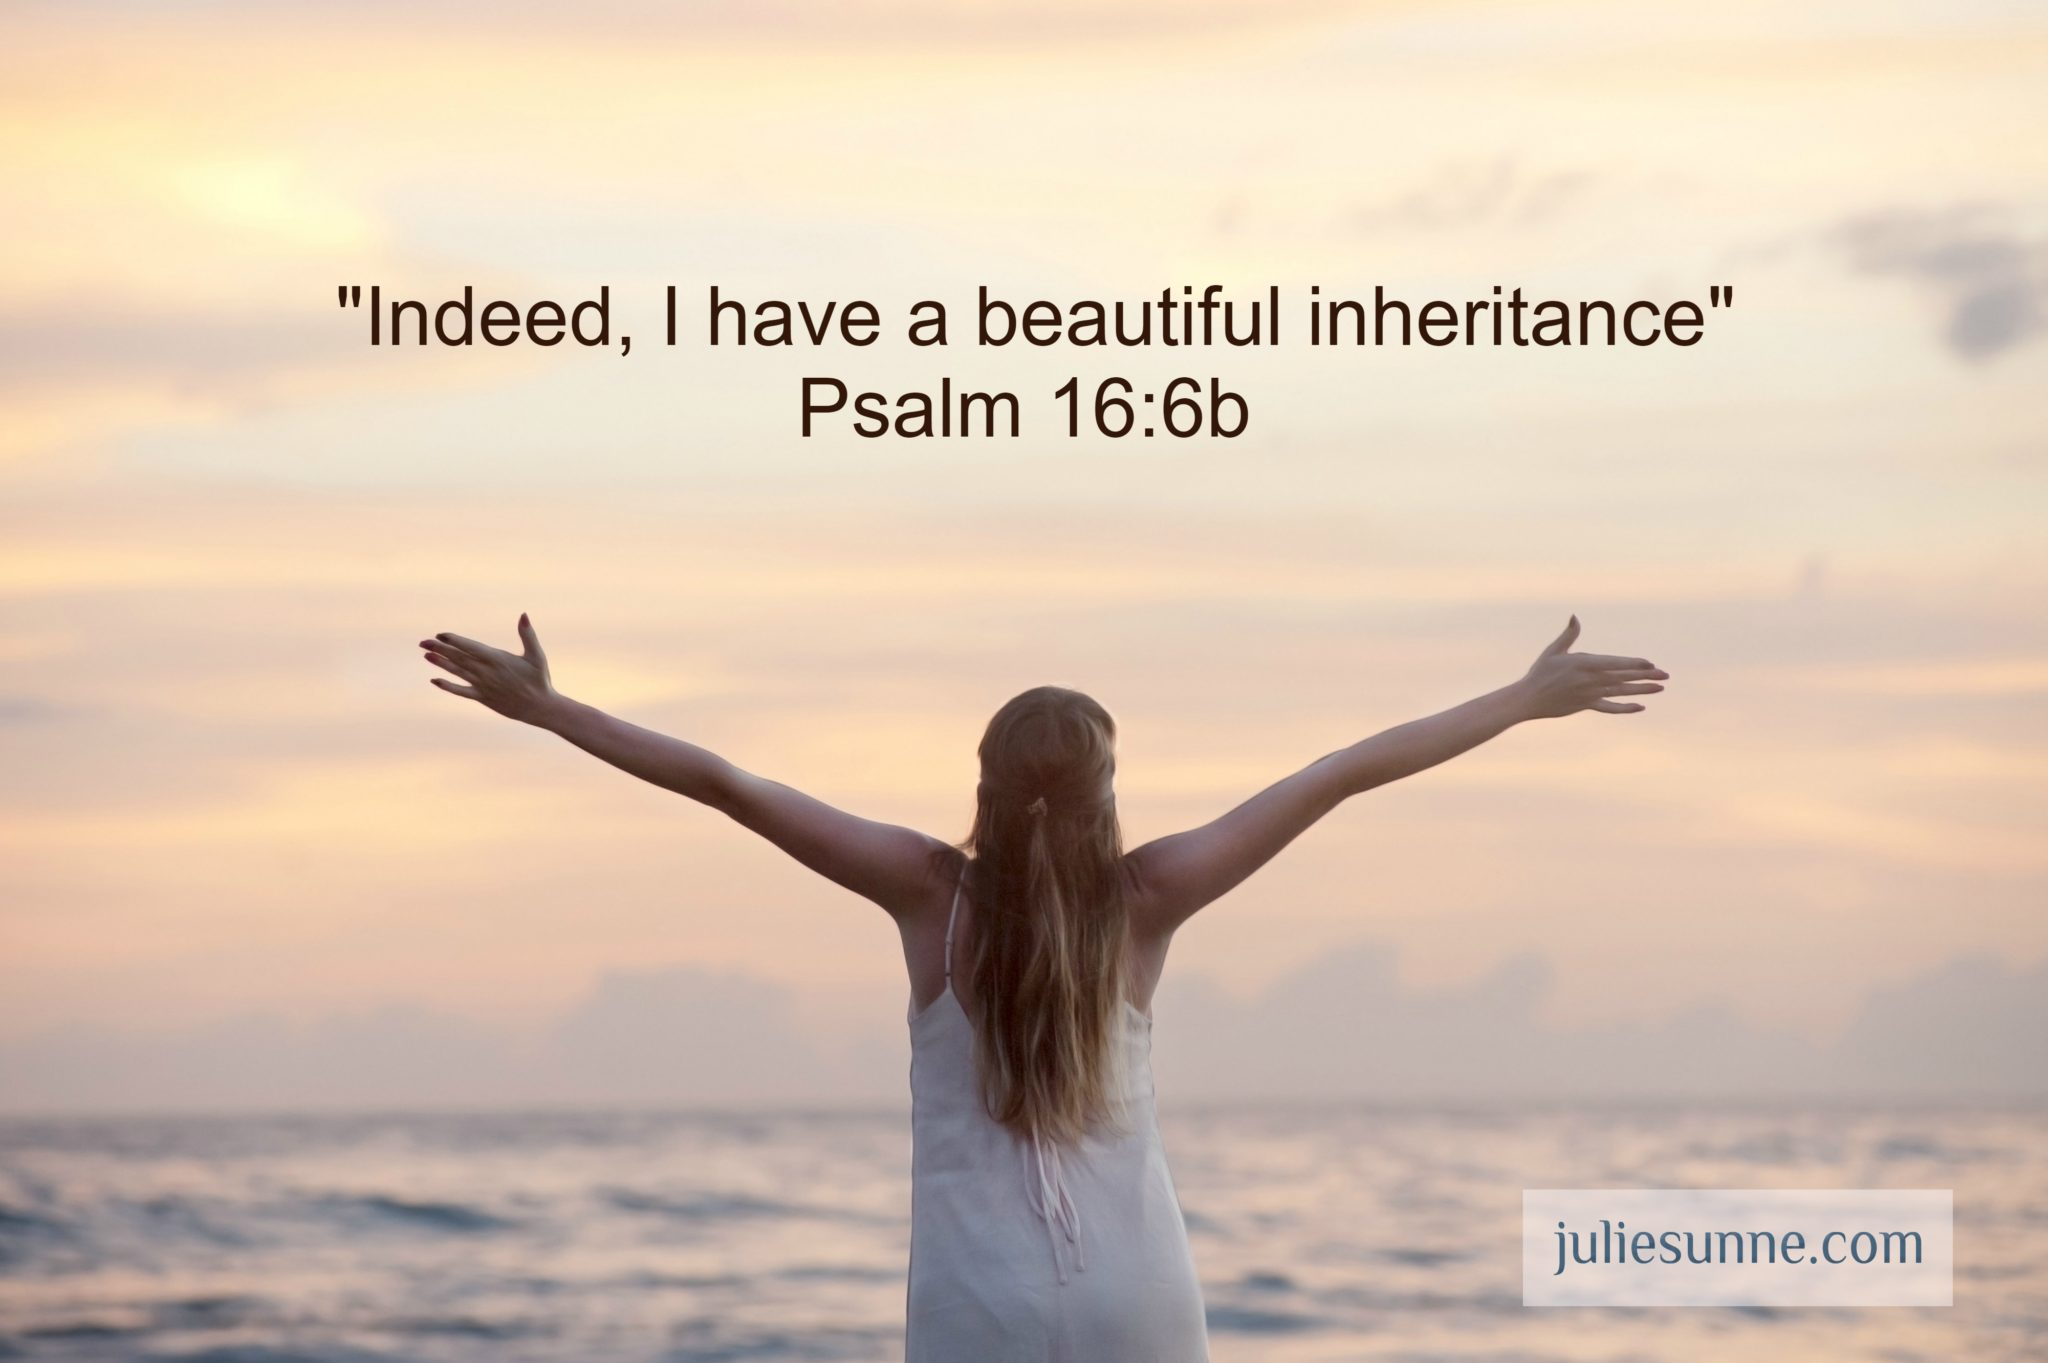 Receive Your Beautiful Inheritance A Free Gift Julie Sunne